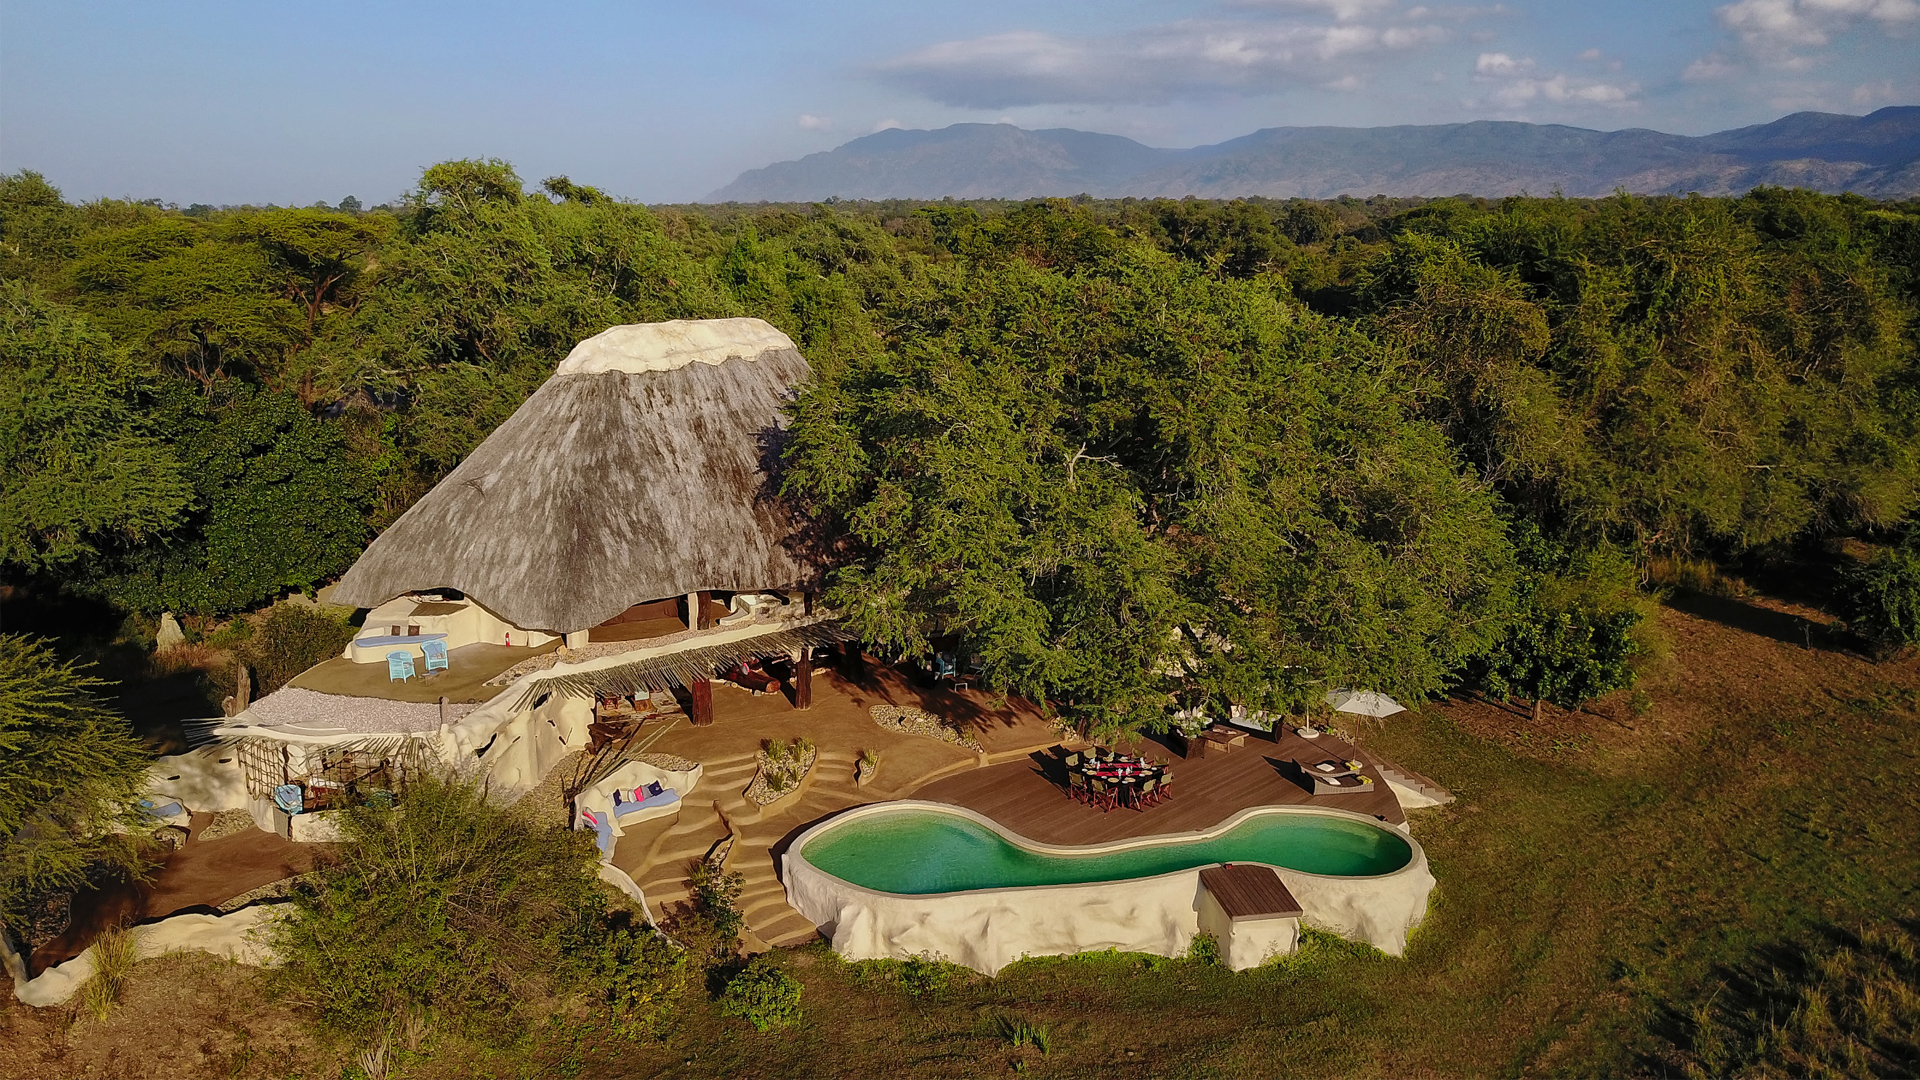 All About Safaris Accommodation private time + tide chongwe house aerial view